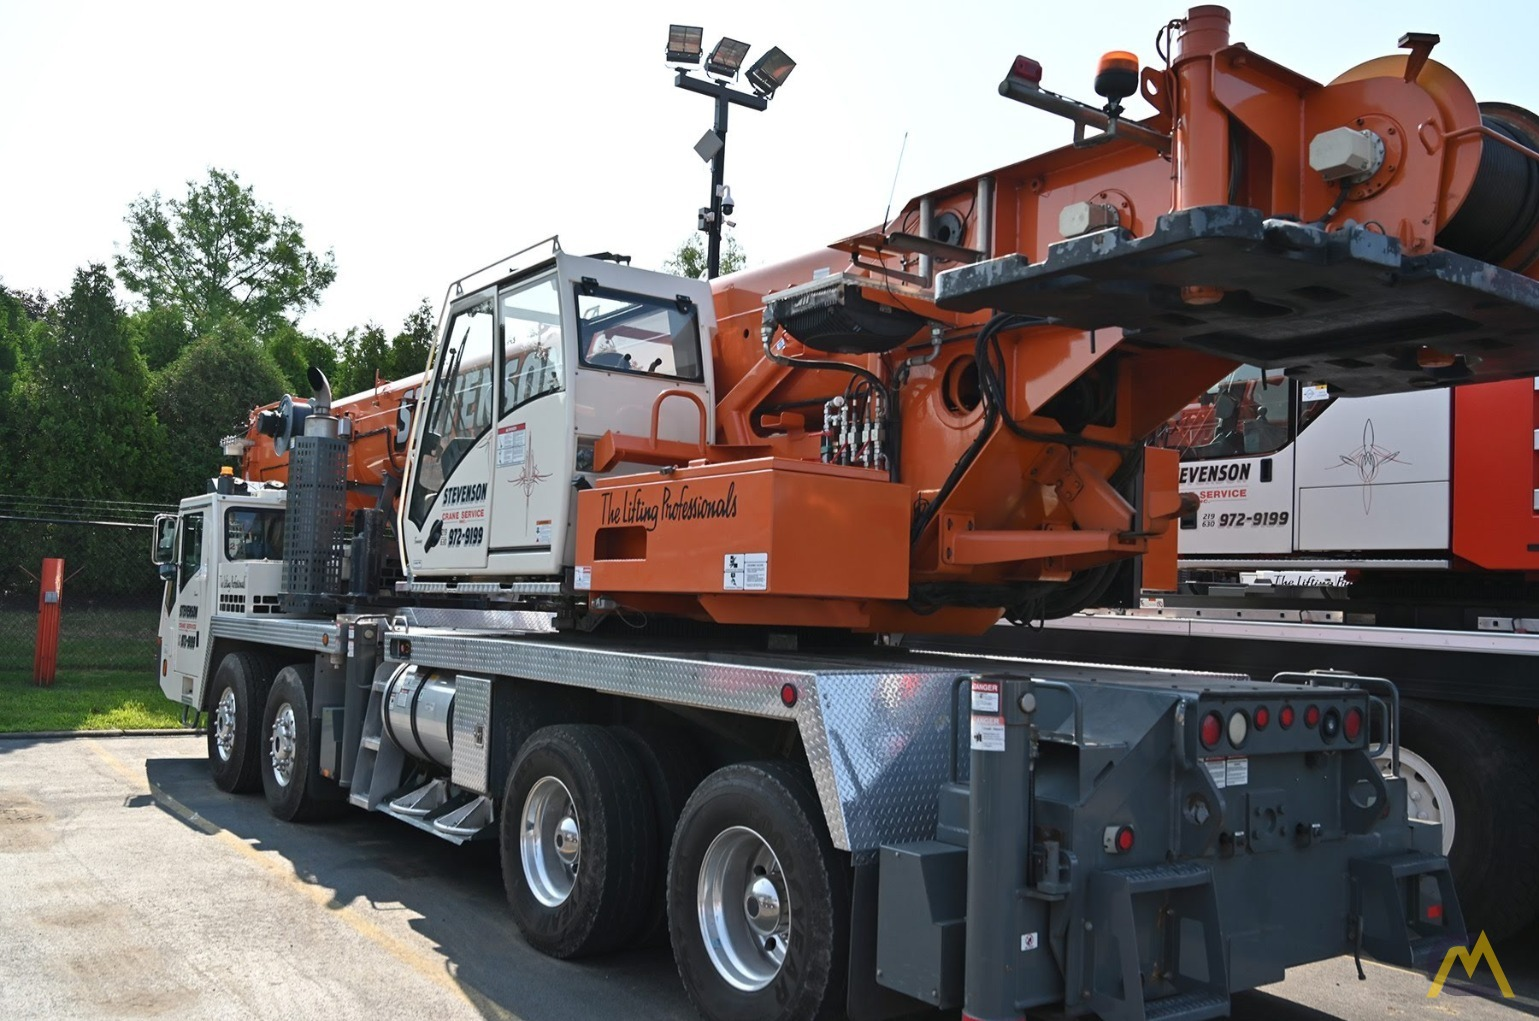 2012 Grove TMS9000E 110-Ton Hydraulic Truck Crane  Motivated Seller, All Reasonable Offers Considered 4